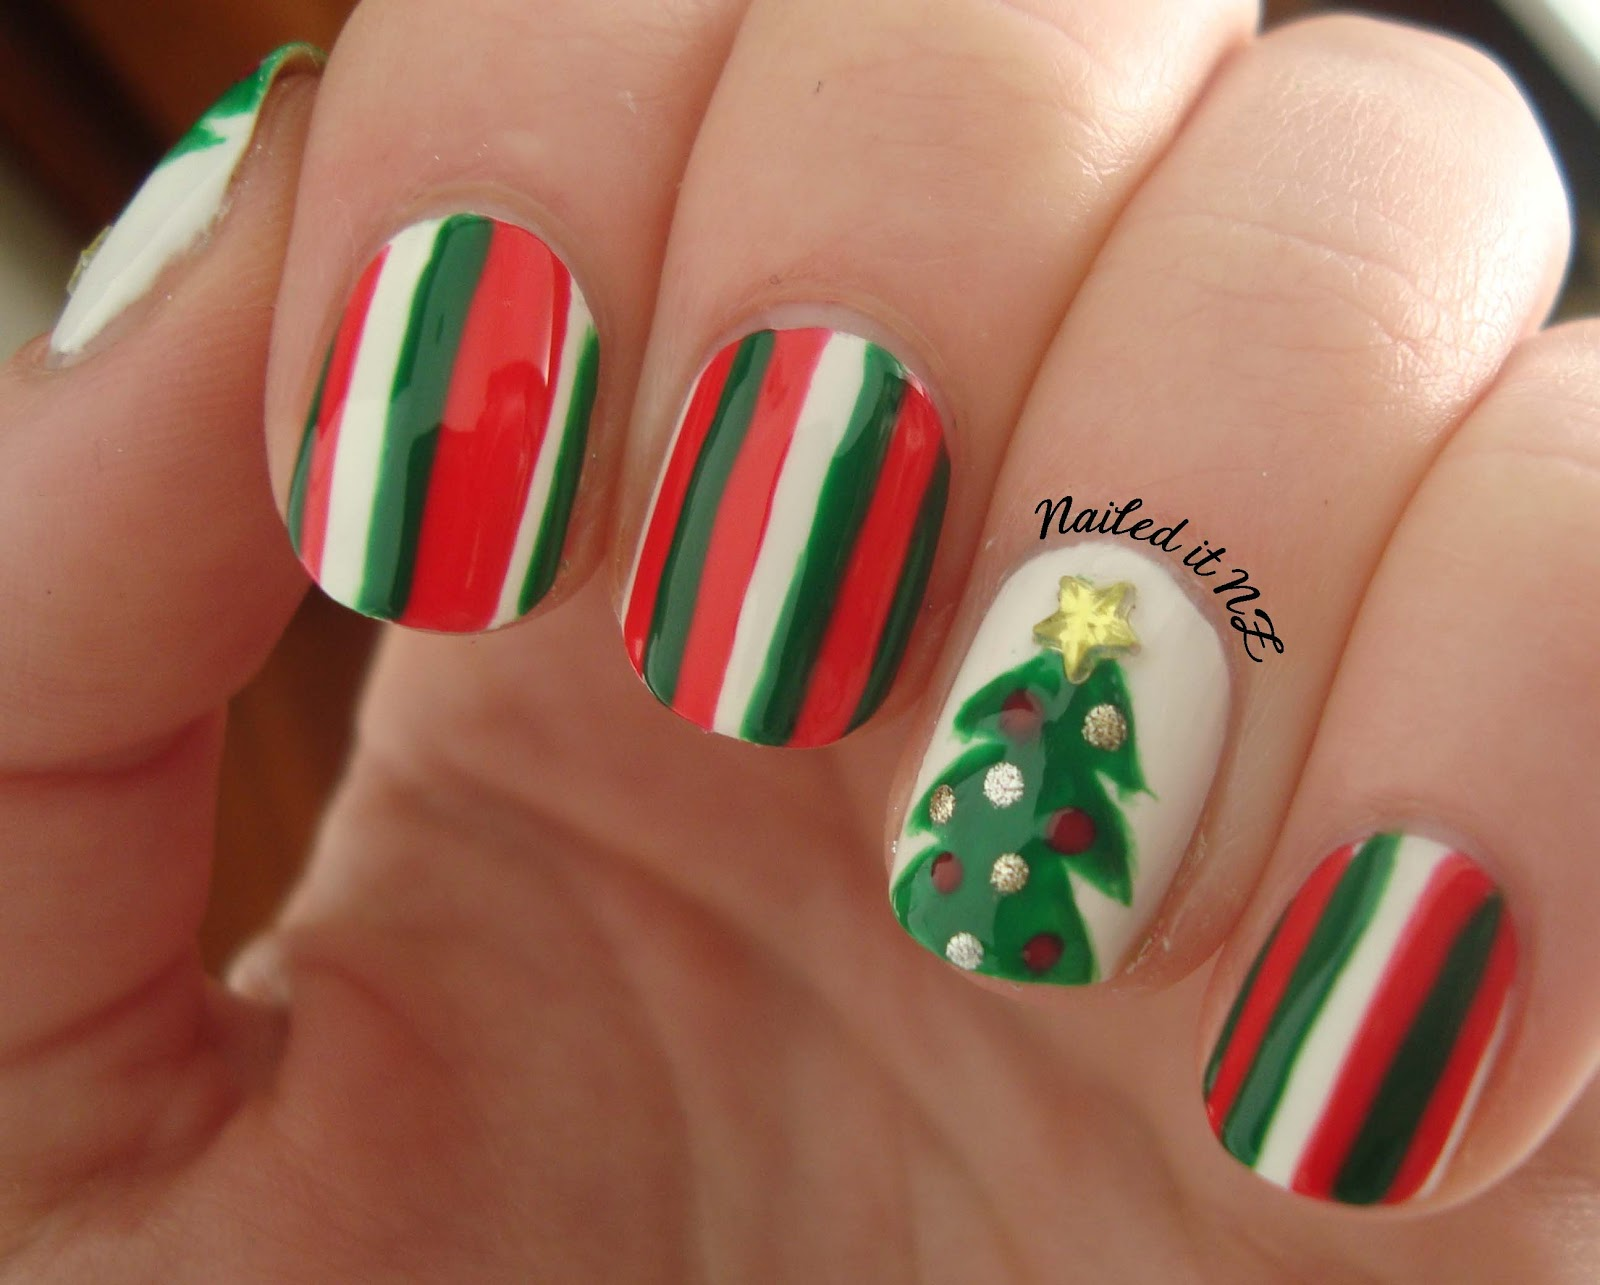 NZ: Nail art for short nails #4 - Christmas tree nails + Mosaic nails ...